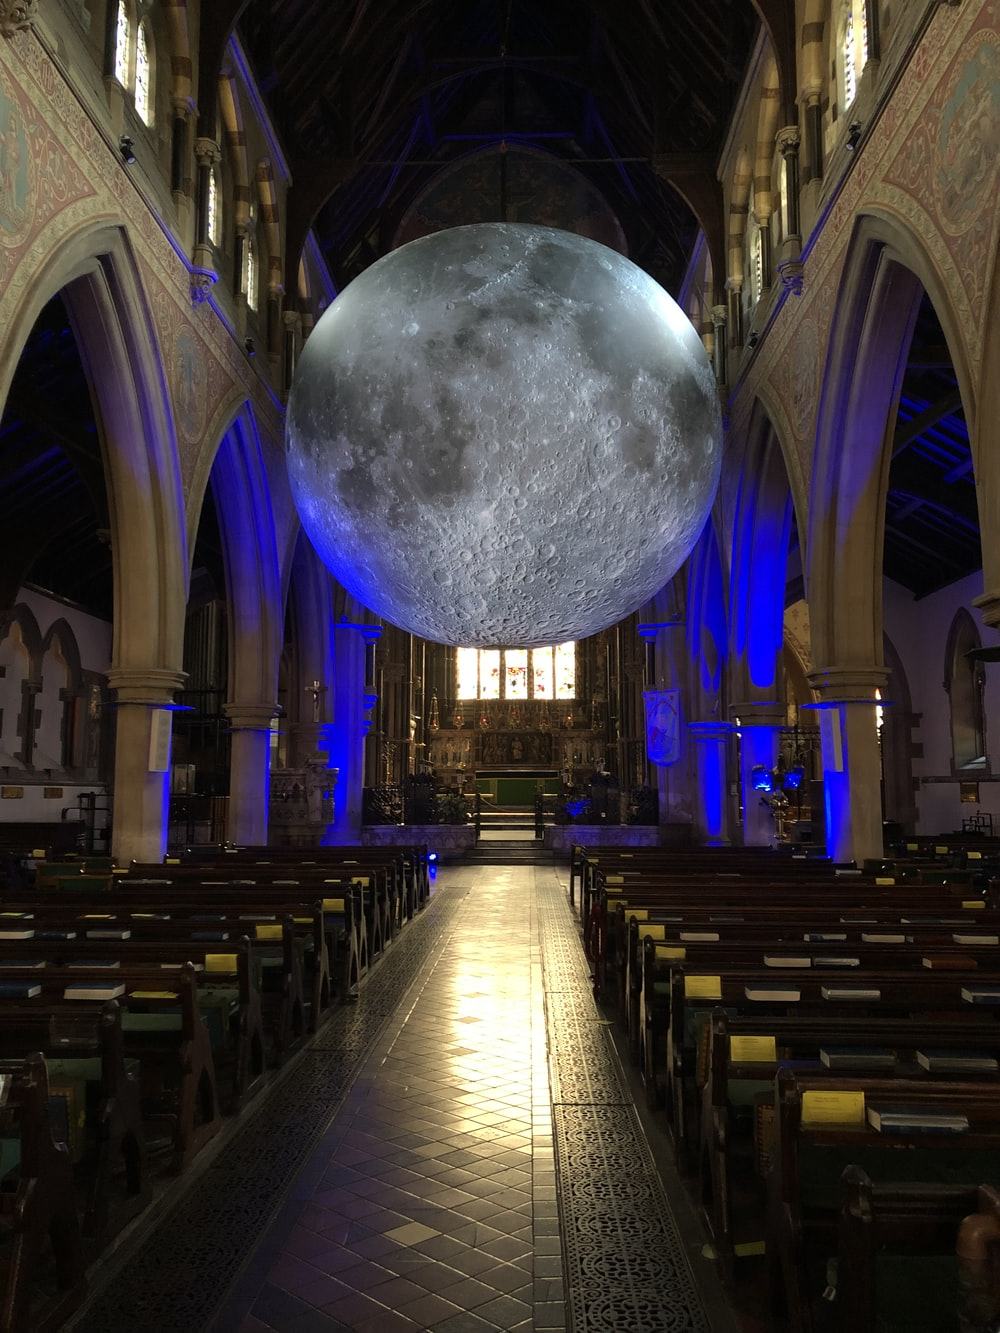 moon model inside a church